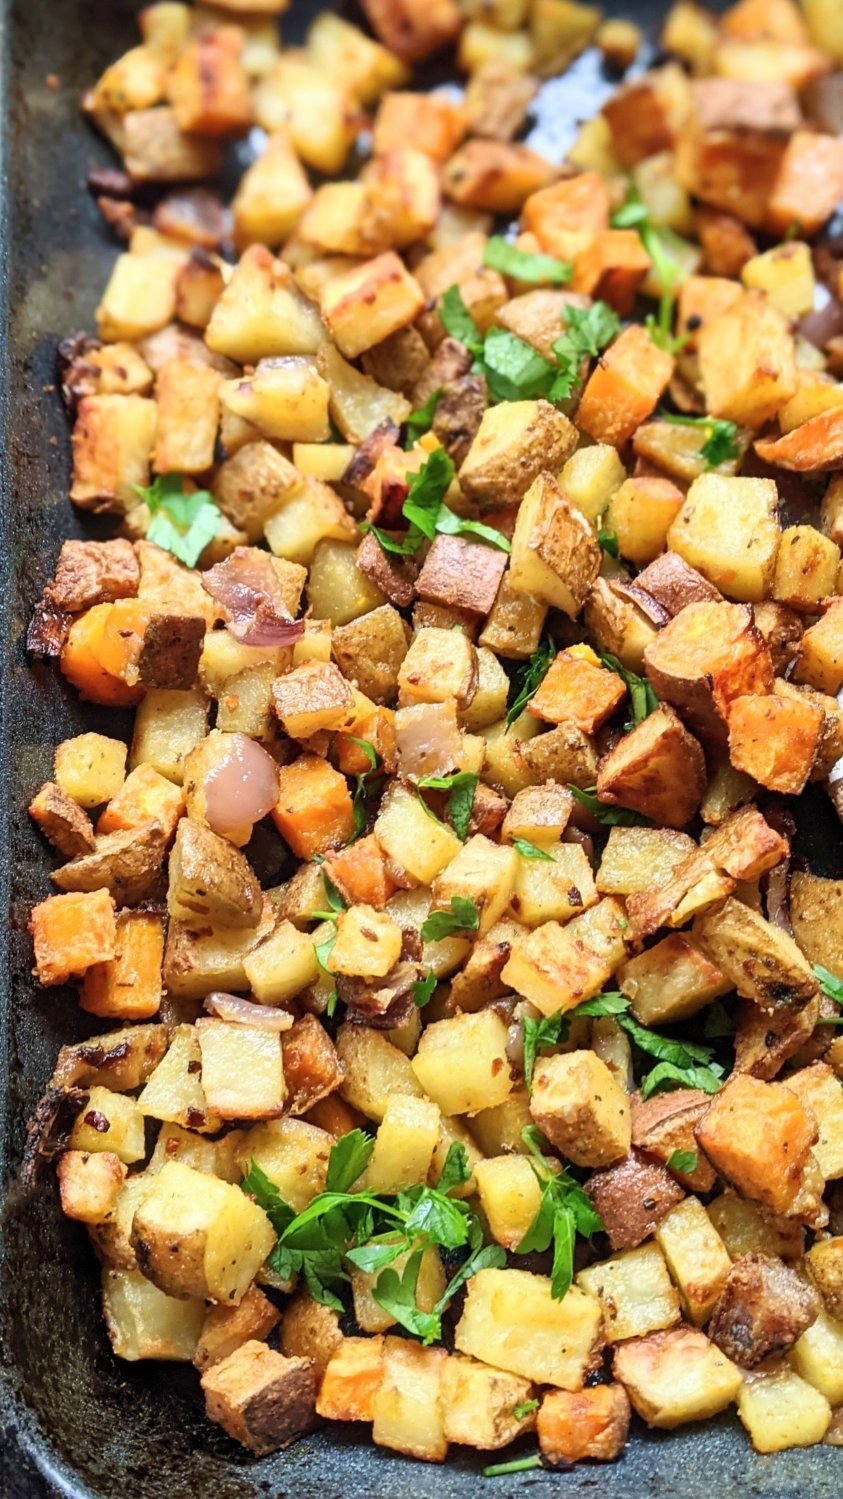 gluten free home fries recipe whole30 plant based breakfast recipes healthy root vegetable home fries simple flavorful brunch ideas paleo